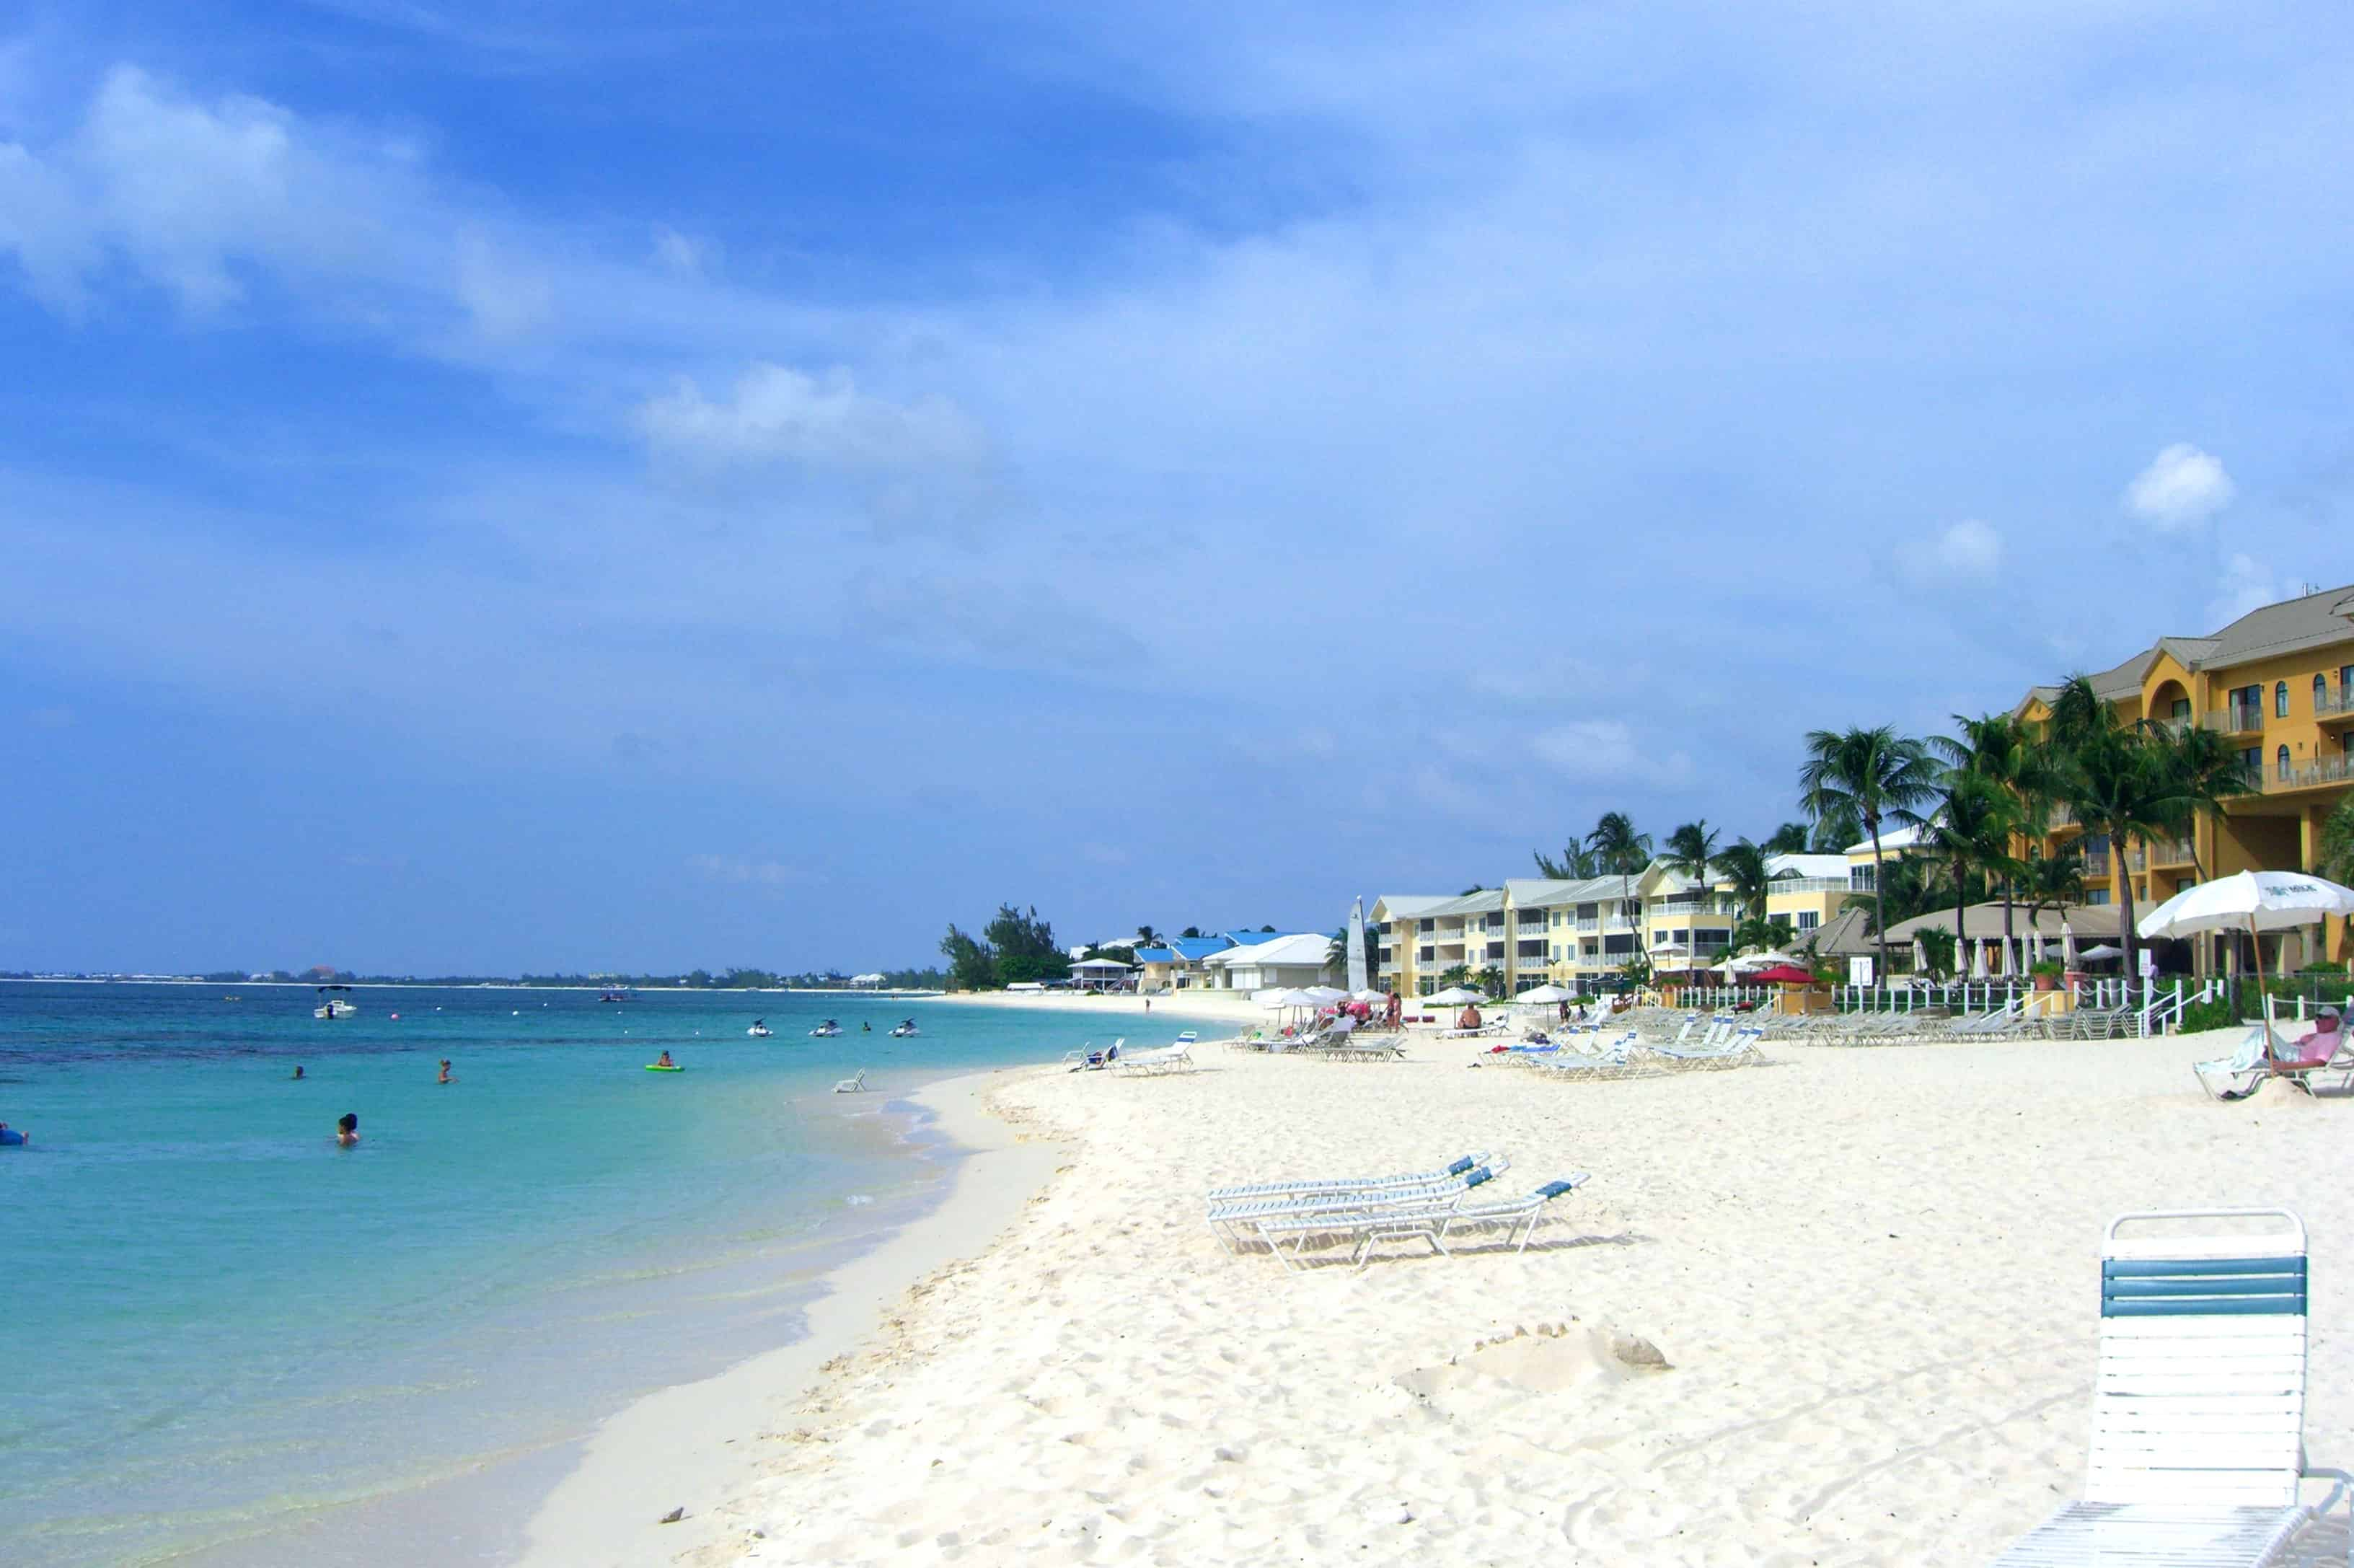 Seven Mile Beach, Grand Cayman - Best Caribbean Beaches to Visit